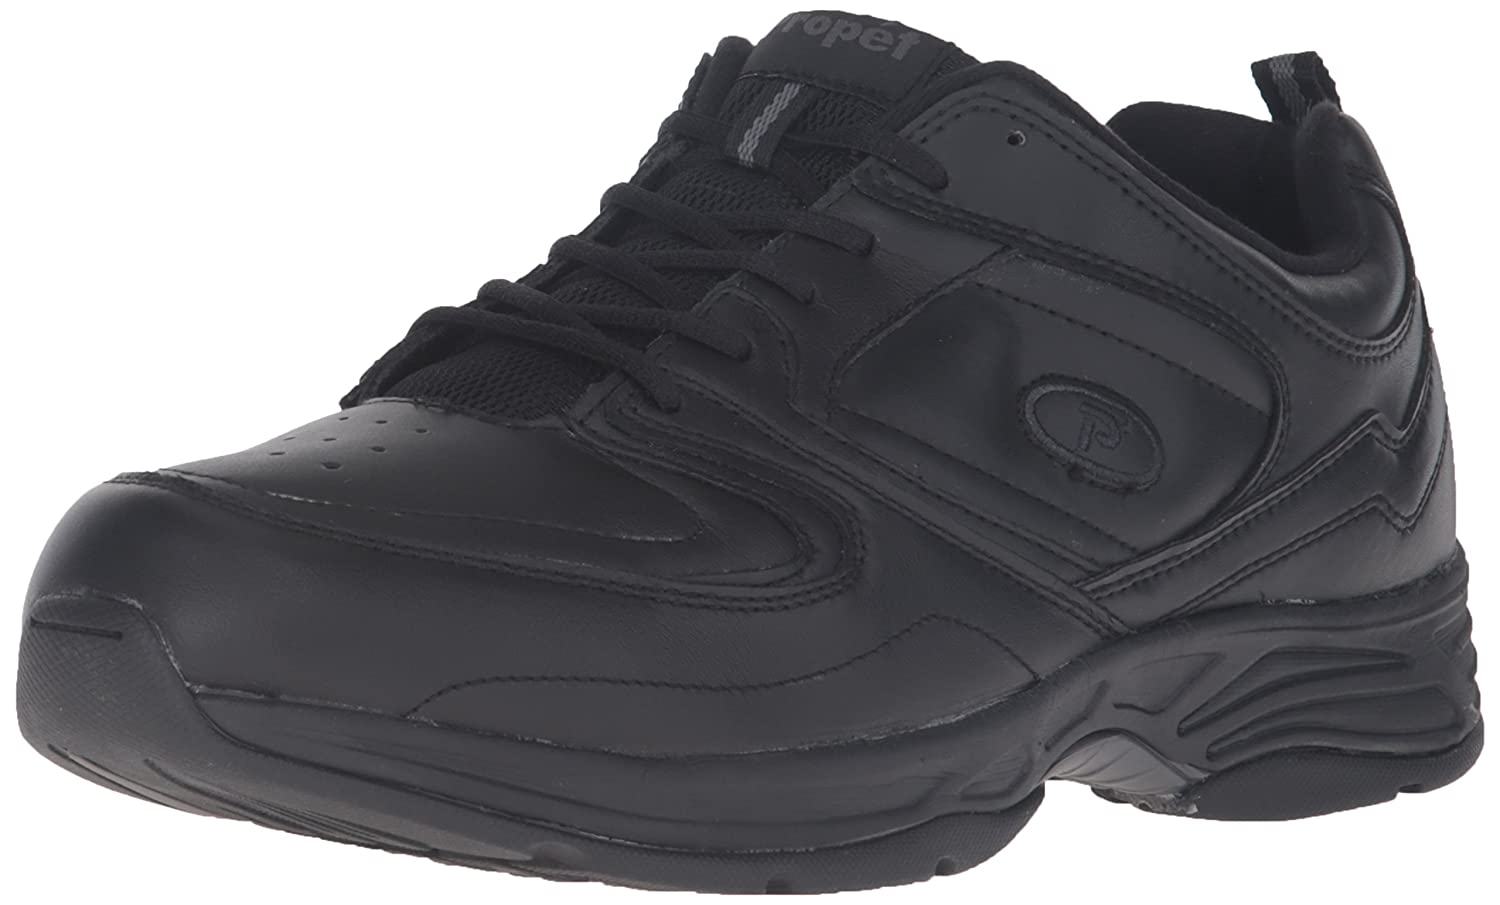 Propet Men's Warner Walking Shoe 7.5 D(M) US|Black